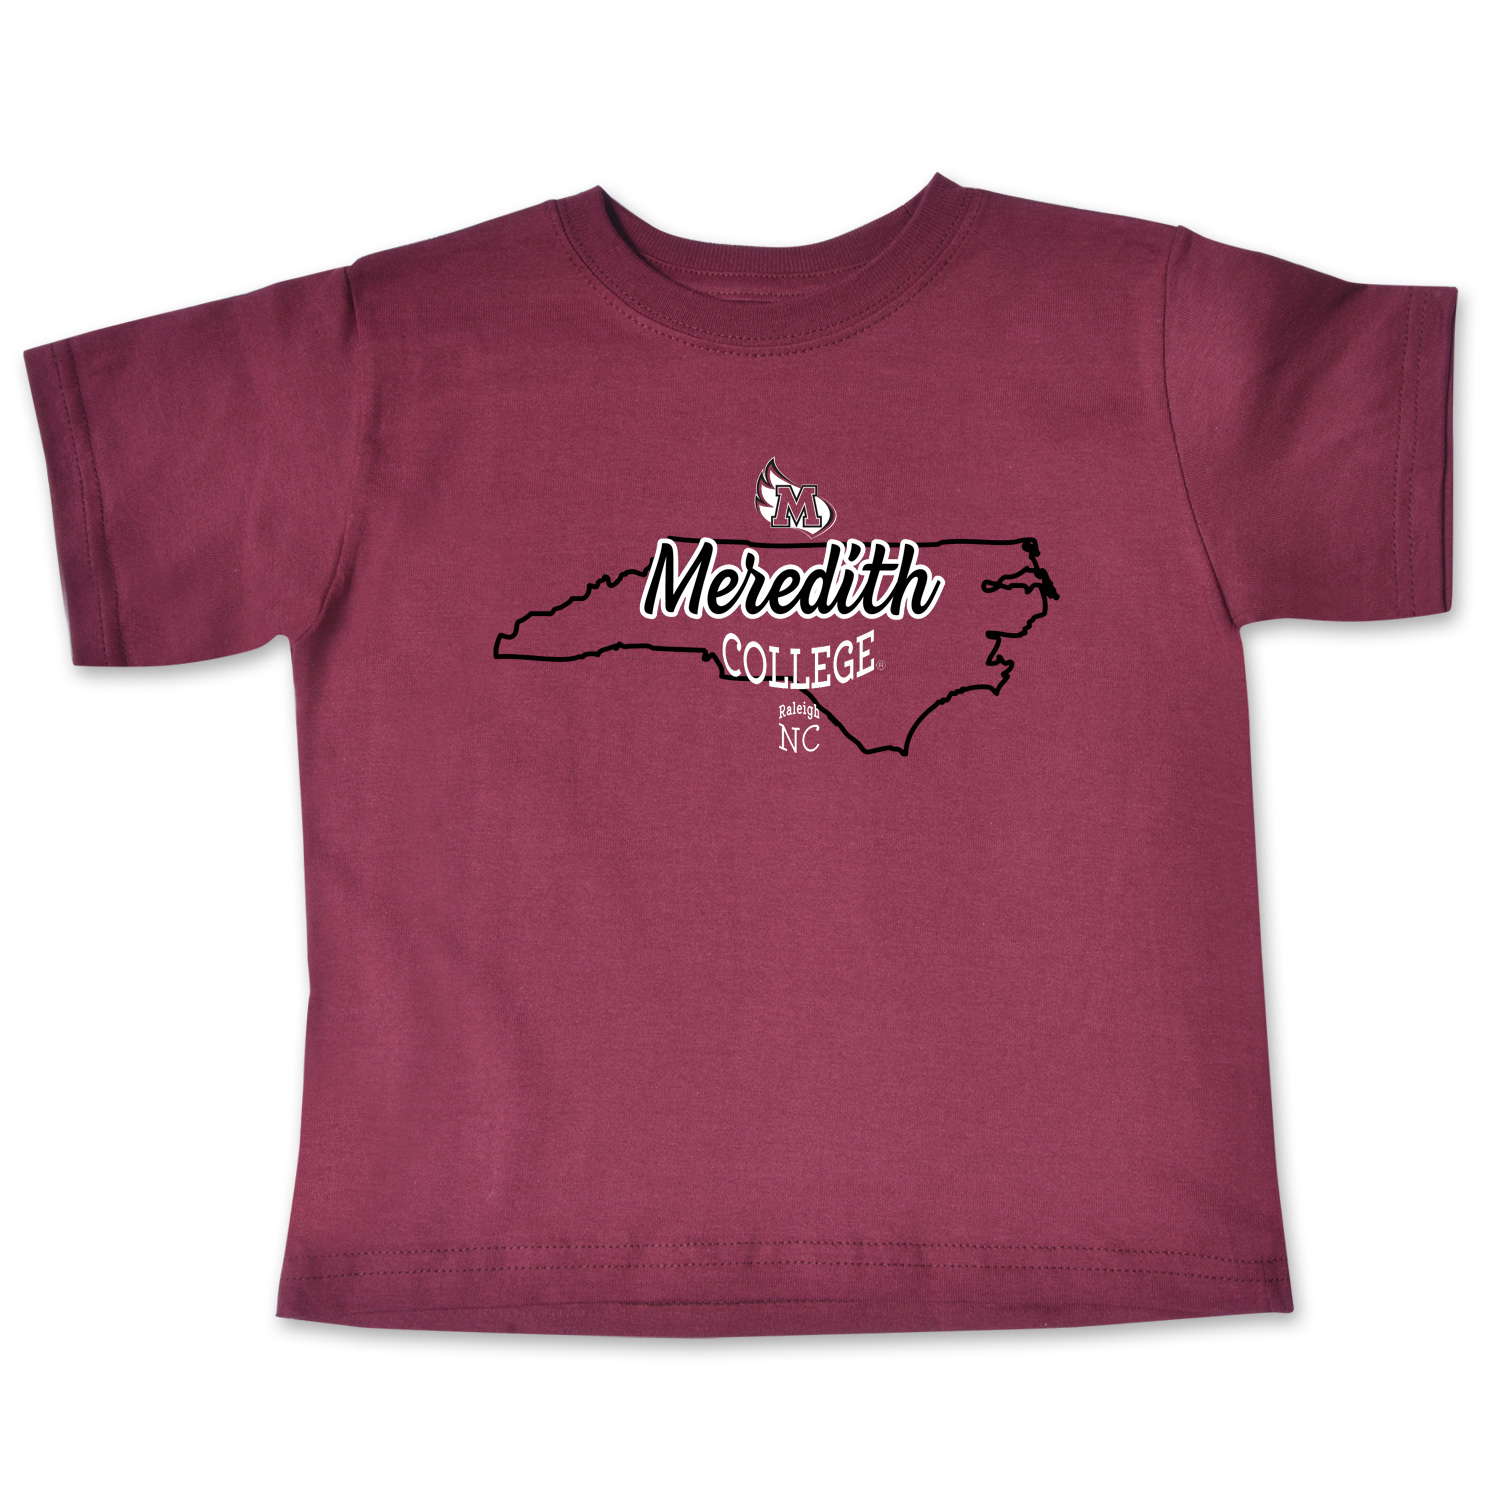 Image for the Toddler Short Sleeve Tee Maroon State Outline College Kids product